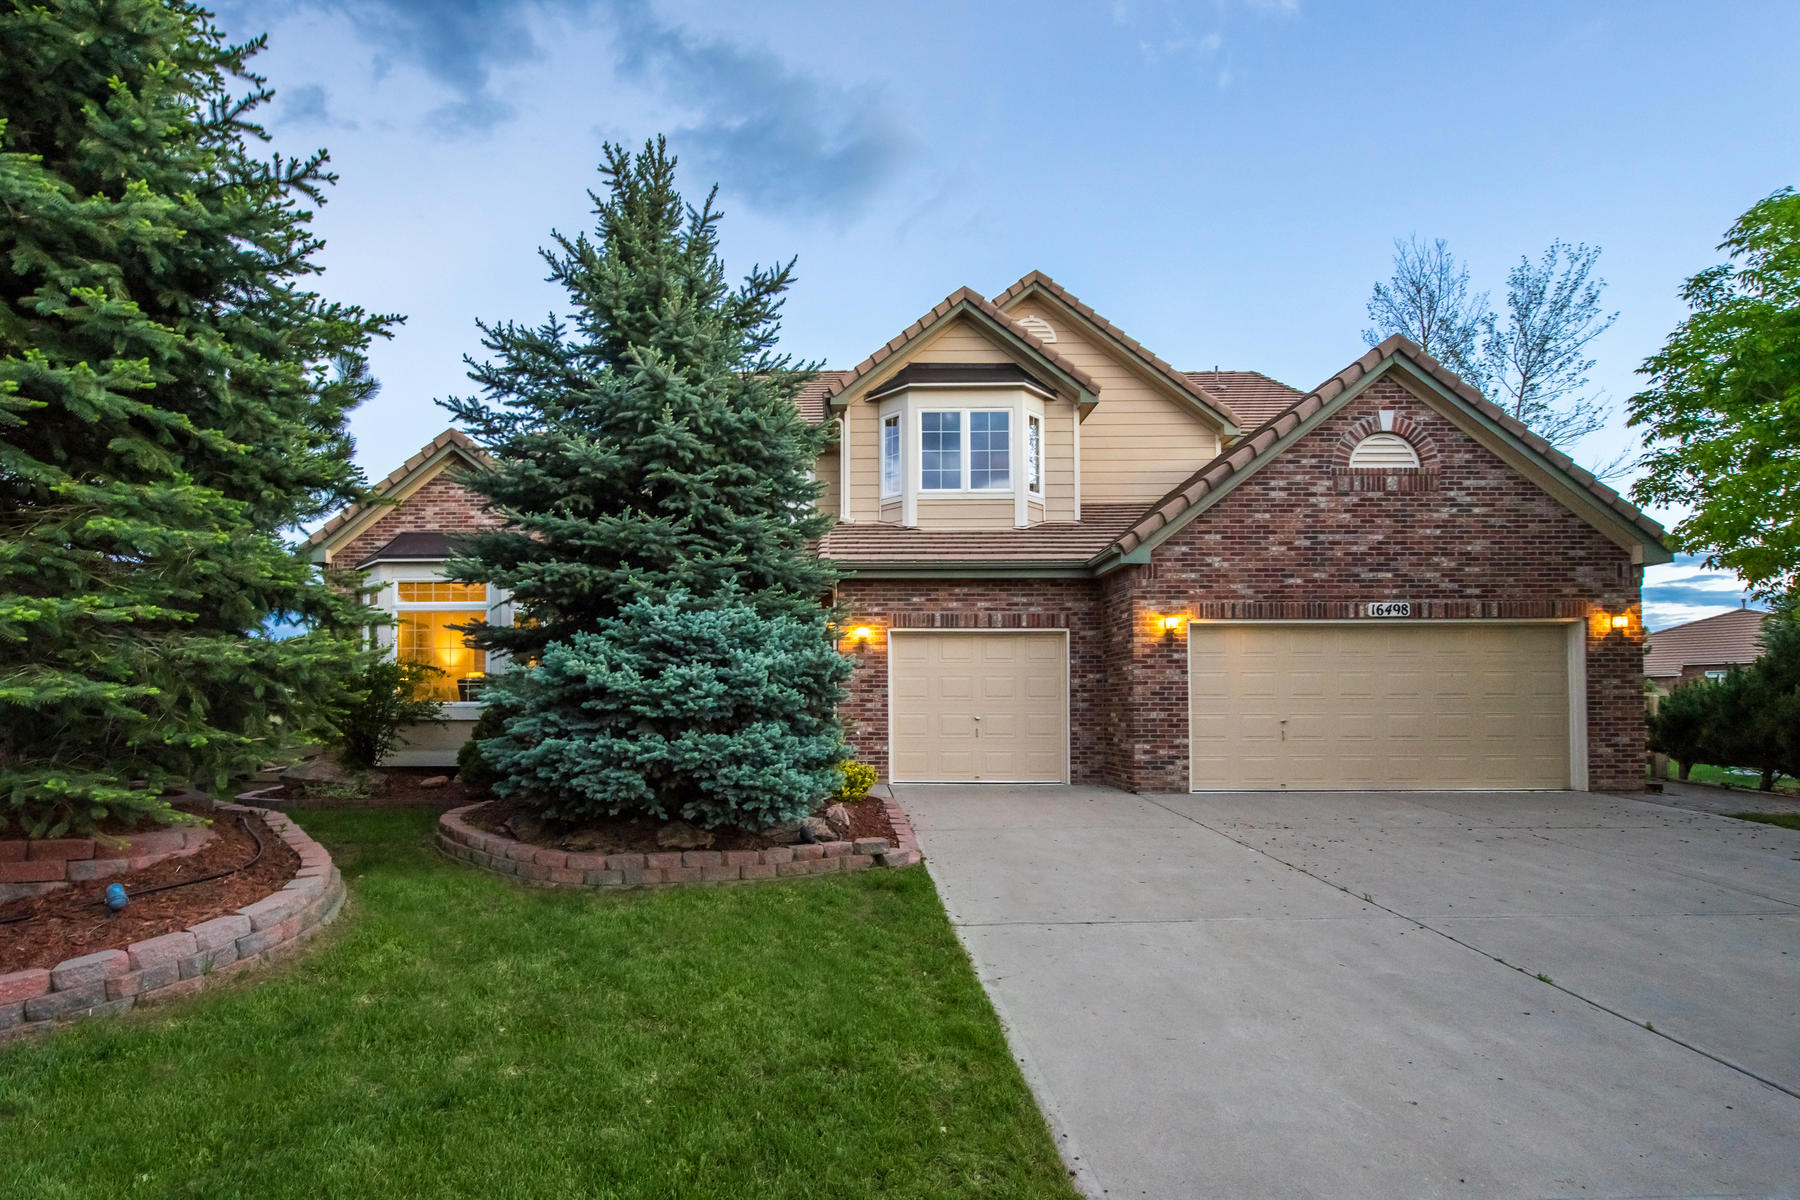 Single Family Home for Active at Stunning executive home located in exclusive Piney Creek Village 16498 E Lake Dr Centennial, Colorado 80016 United States